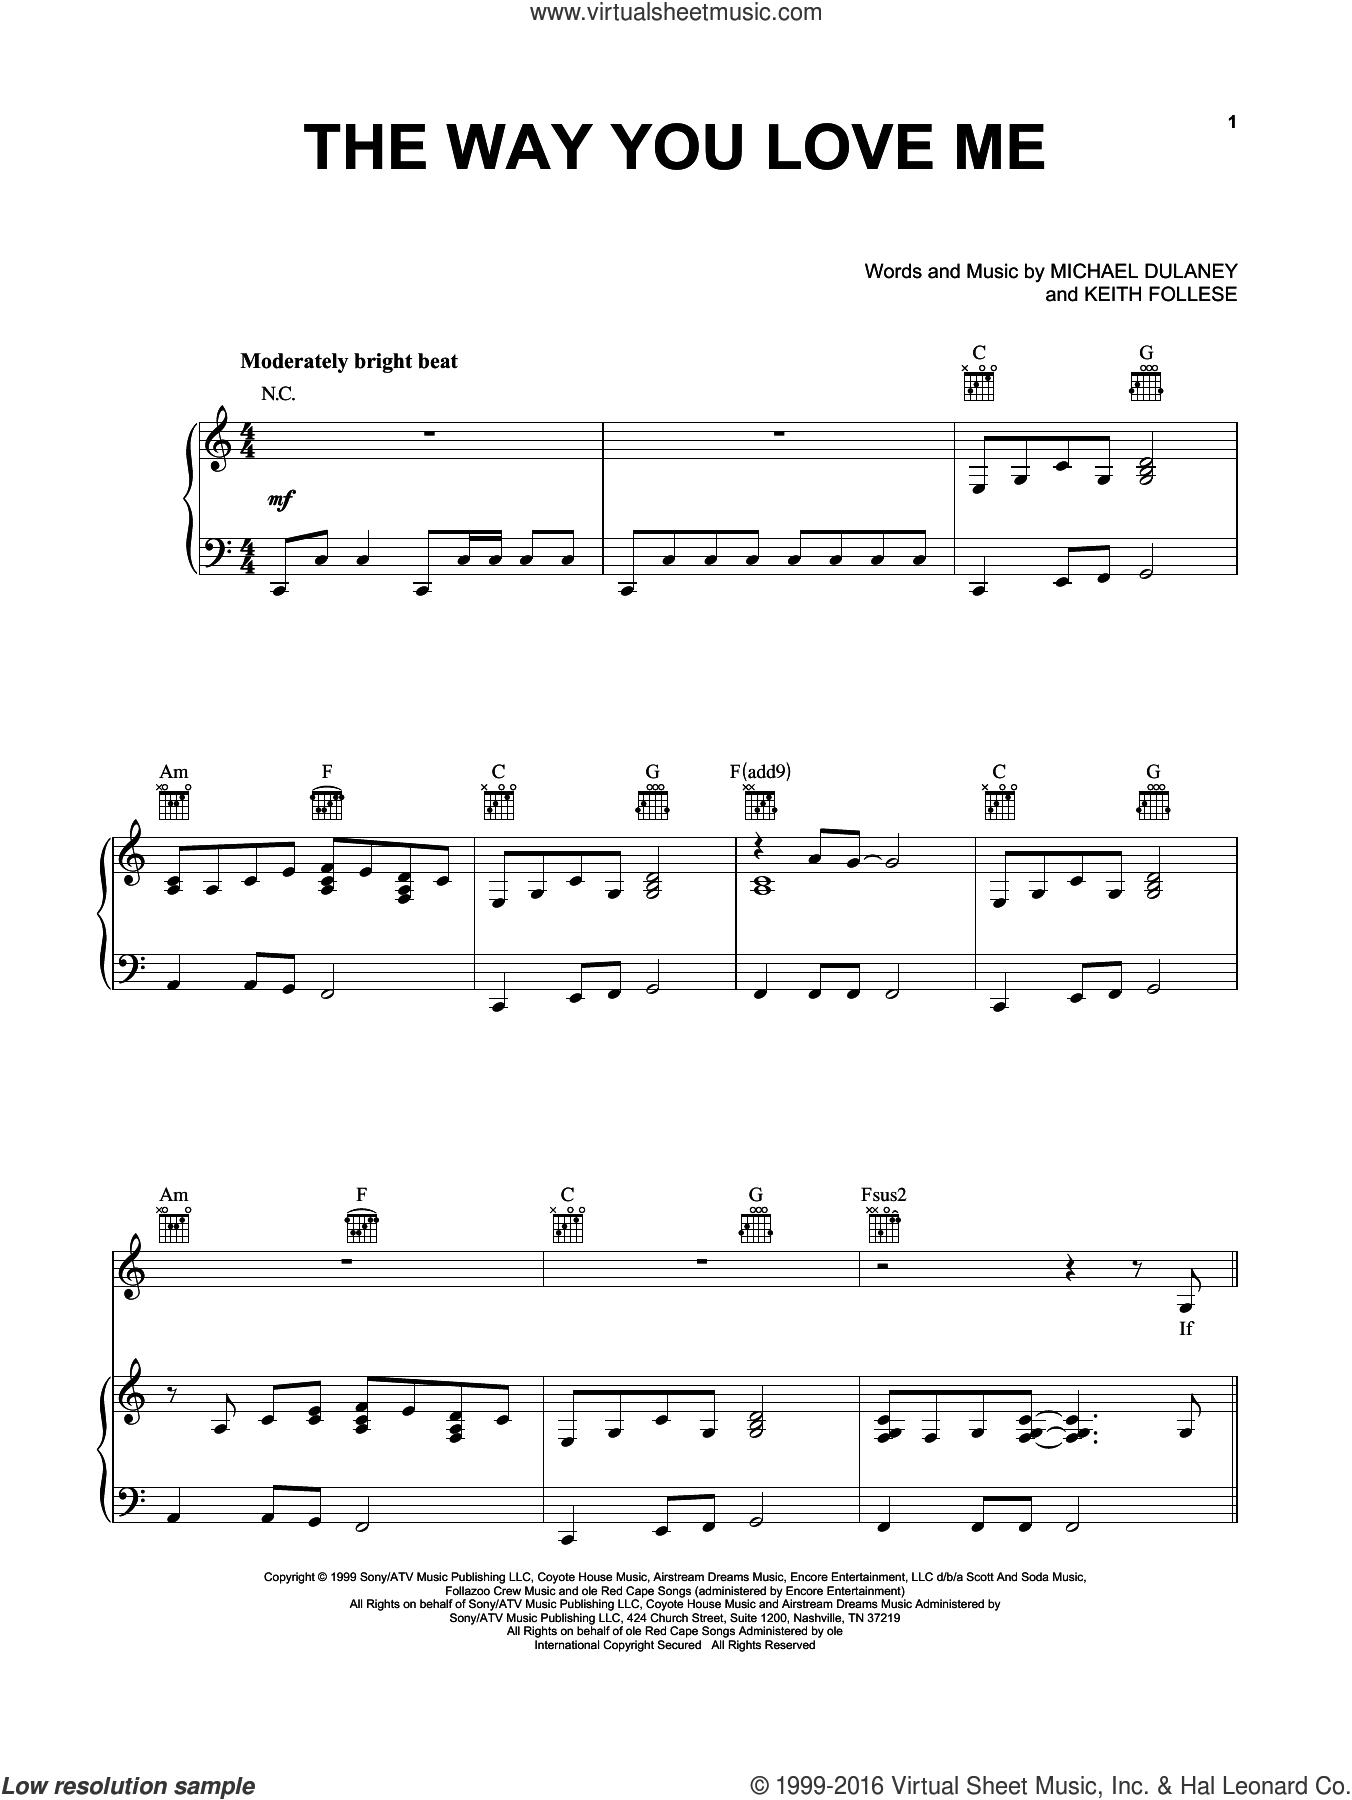 The Way You Love Me sheet music for voice, piano or guitar by Michael Dulaney